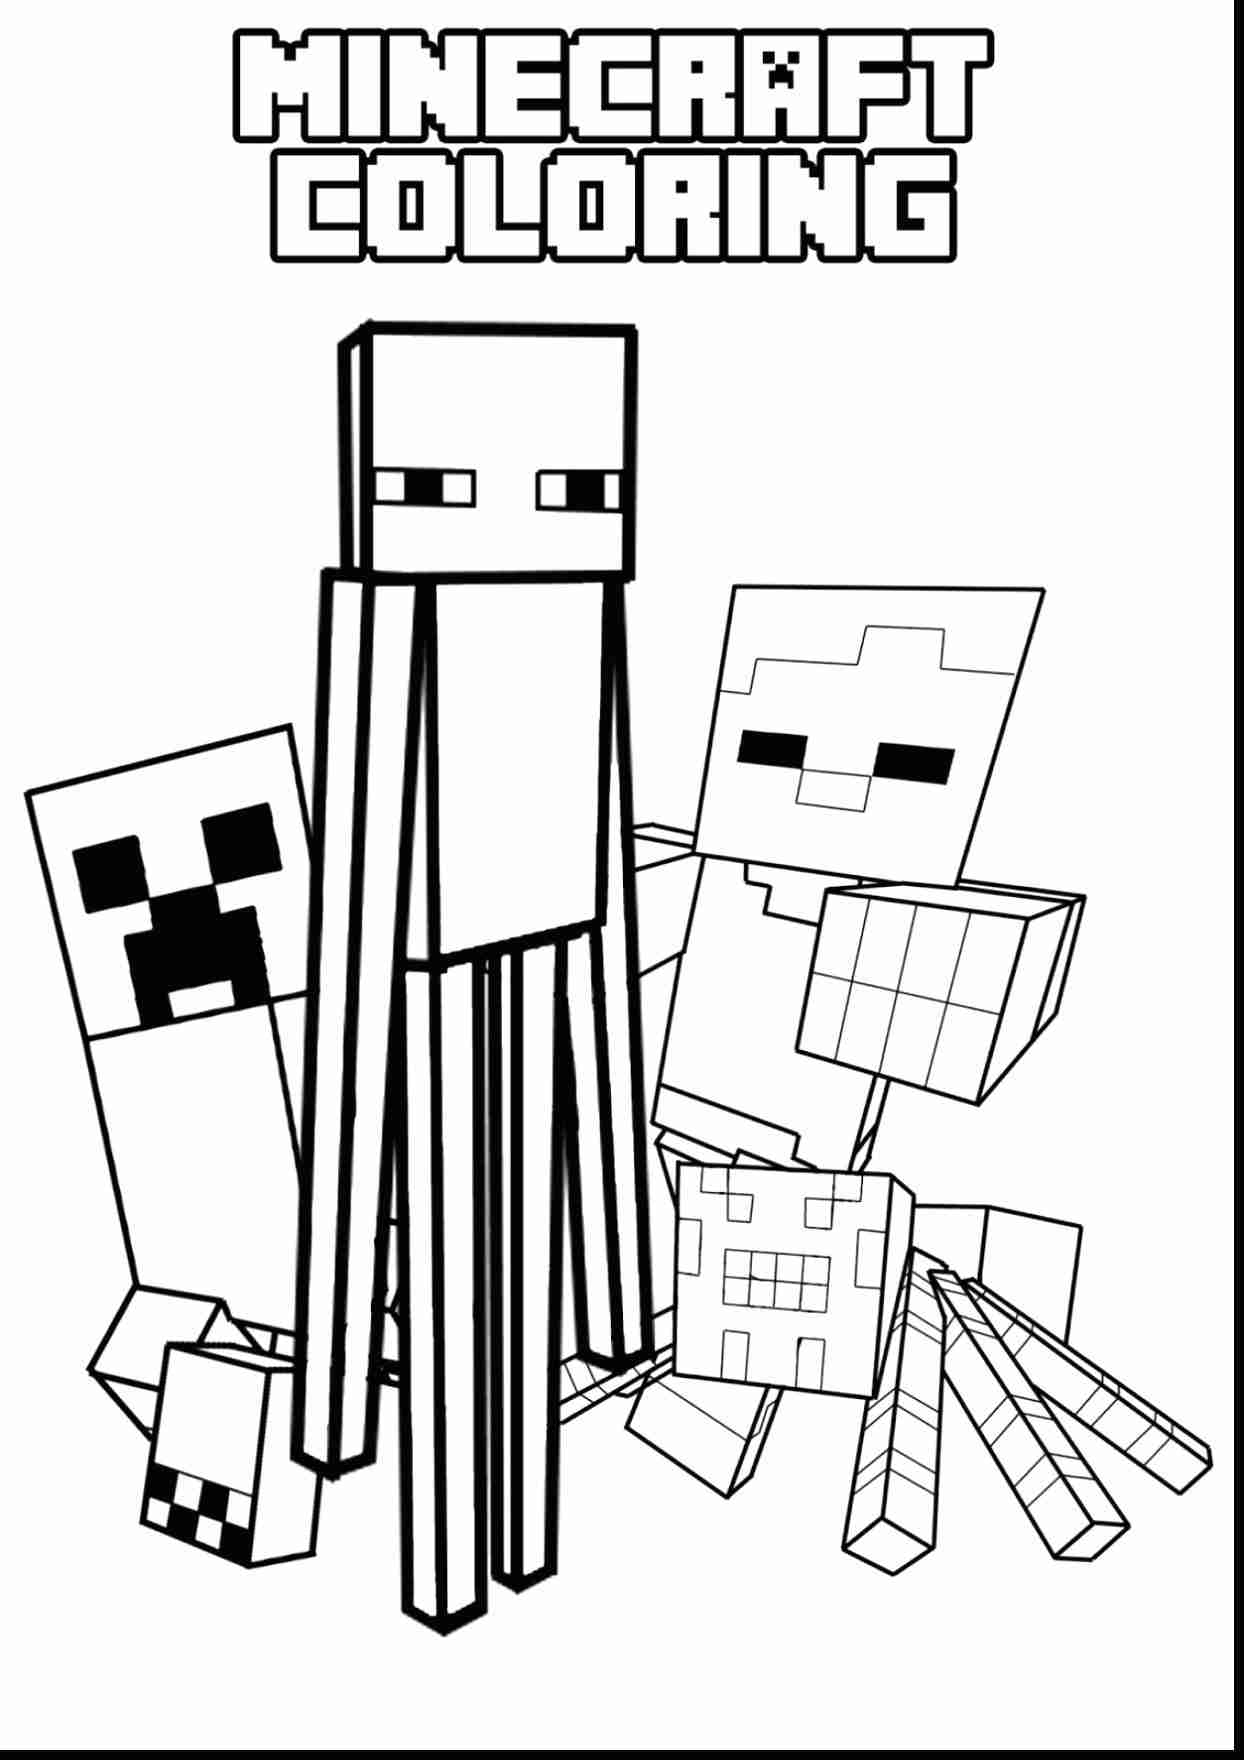 creeper coloring pages dessin et coloriage minecraft minecraftfr pages creeper coloring